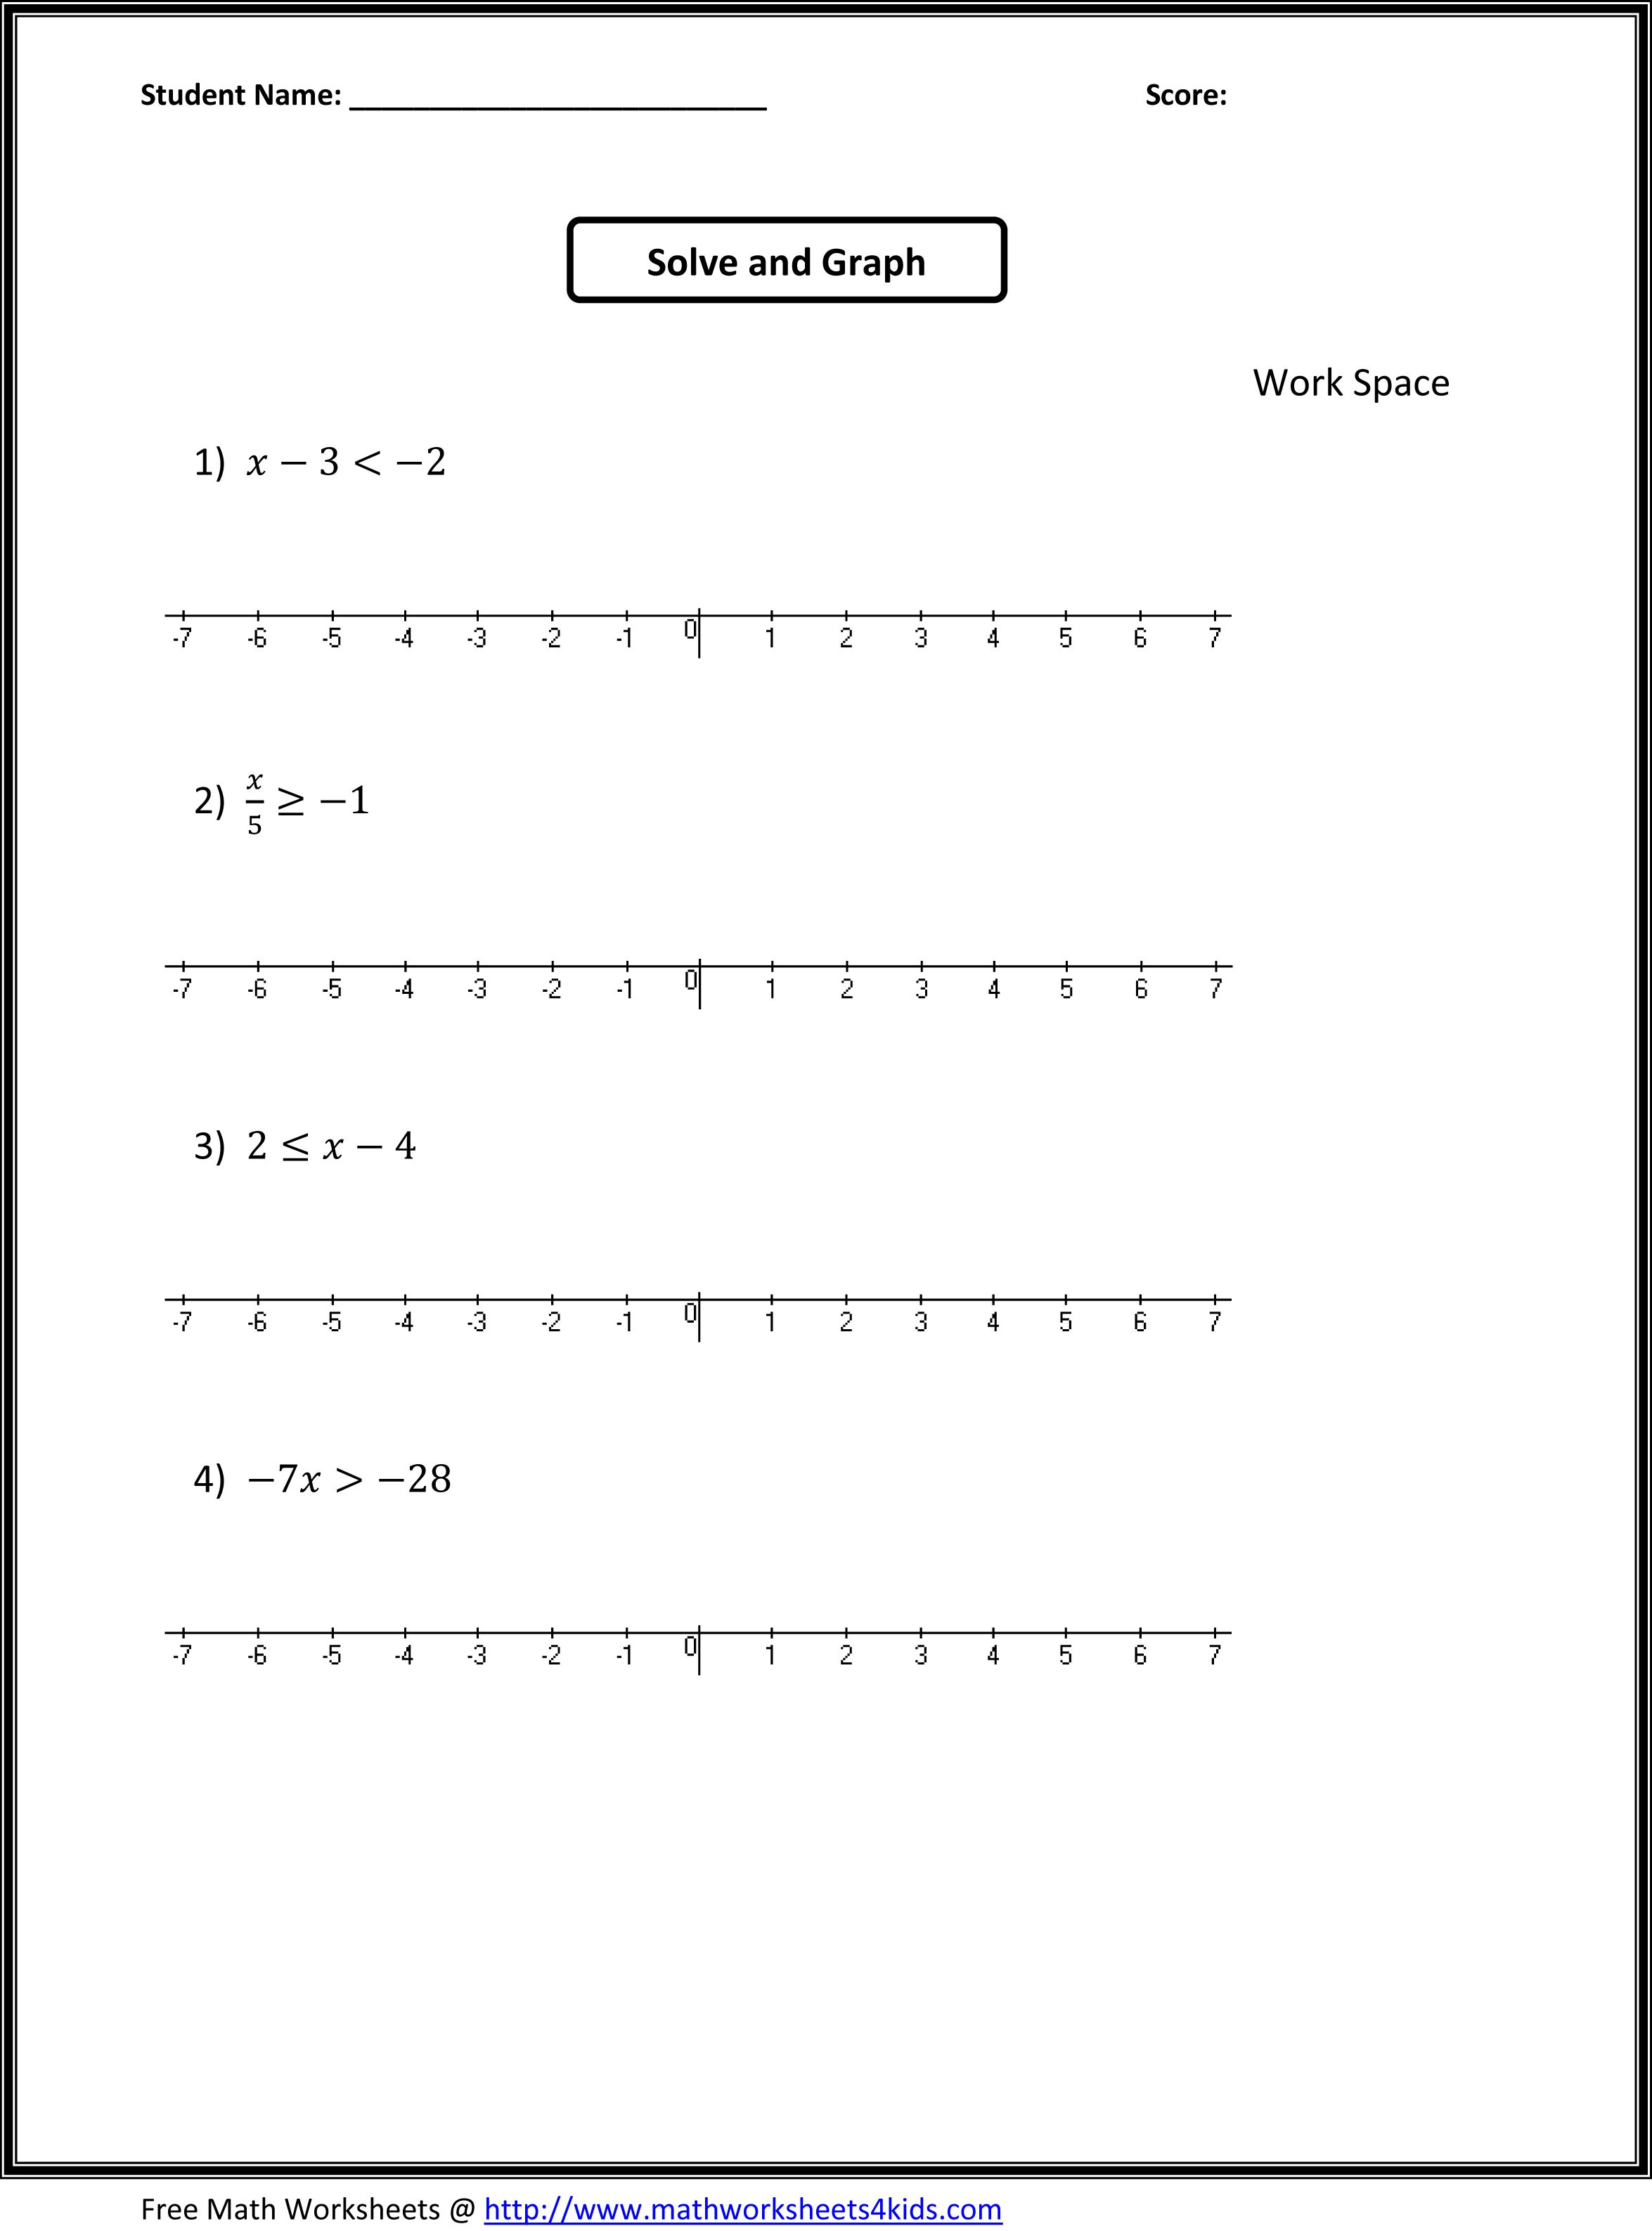 Worksheets 7th Grade Math Worksheets Free 7th grade algebra worksheets math places worksheets